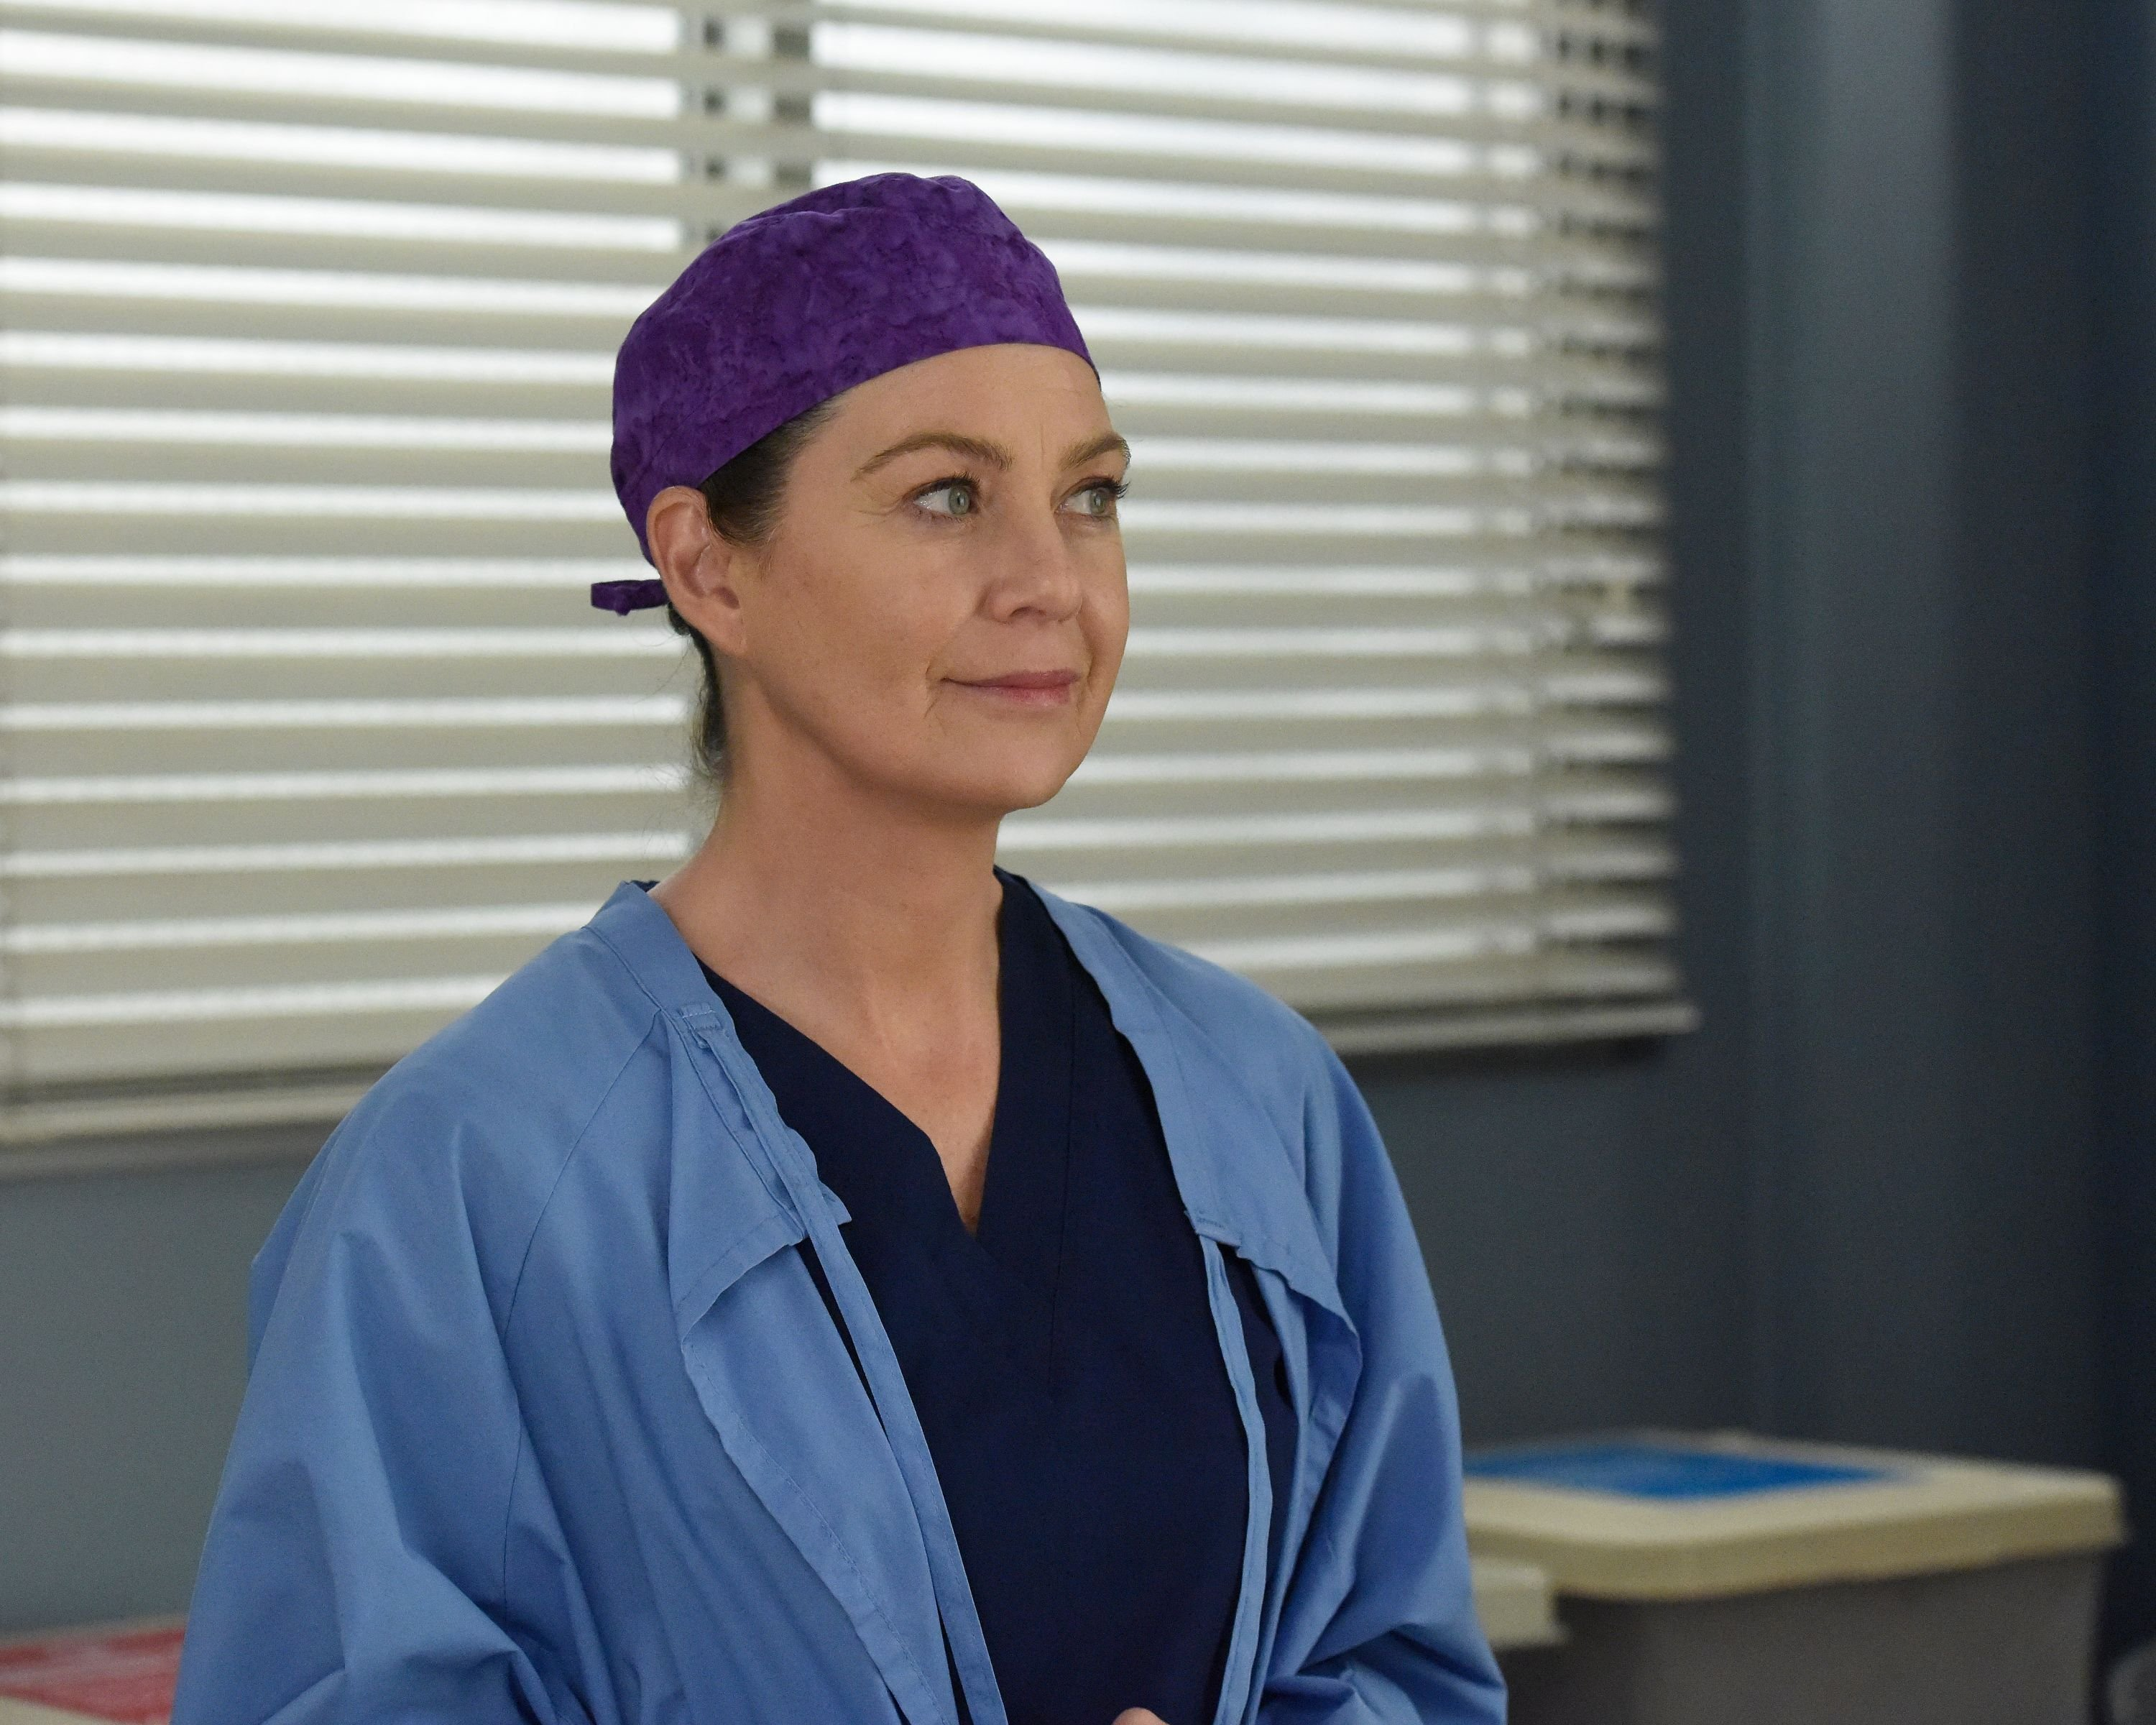 """Ellen Pompeo on set of """"Grey's Anatomy"""" as Meredith in the """"Give a Little Bit"""" episode   Getty Images"""